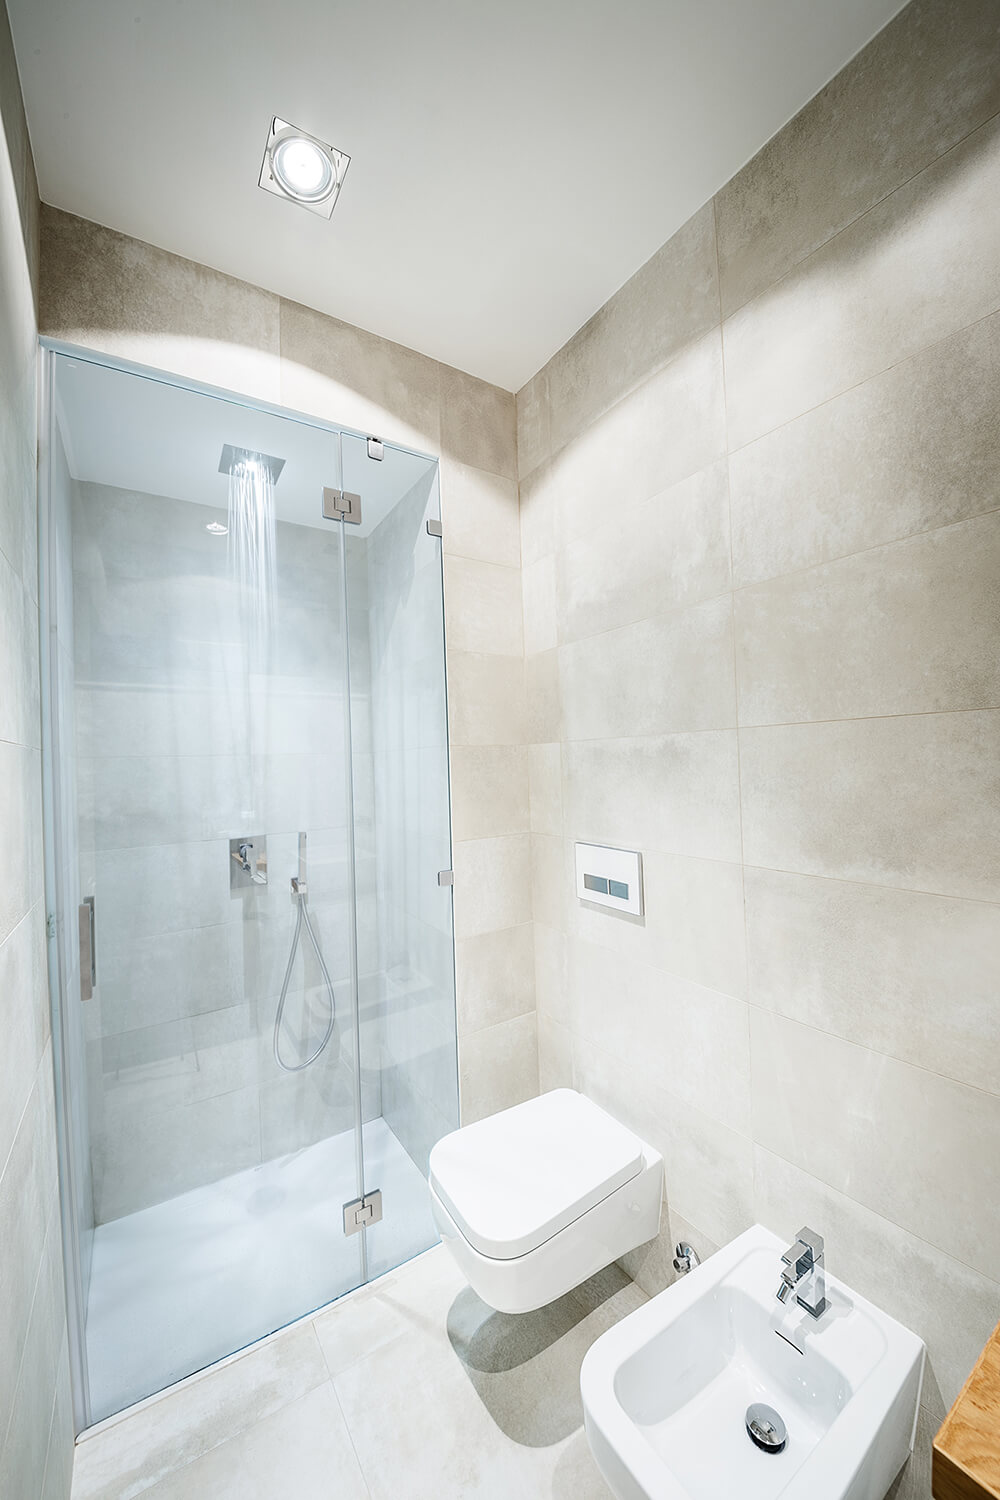 Next to the facilities at the far end of the light grey space, the walk-in shower is enclosed by glass.